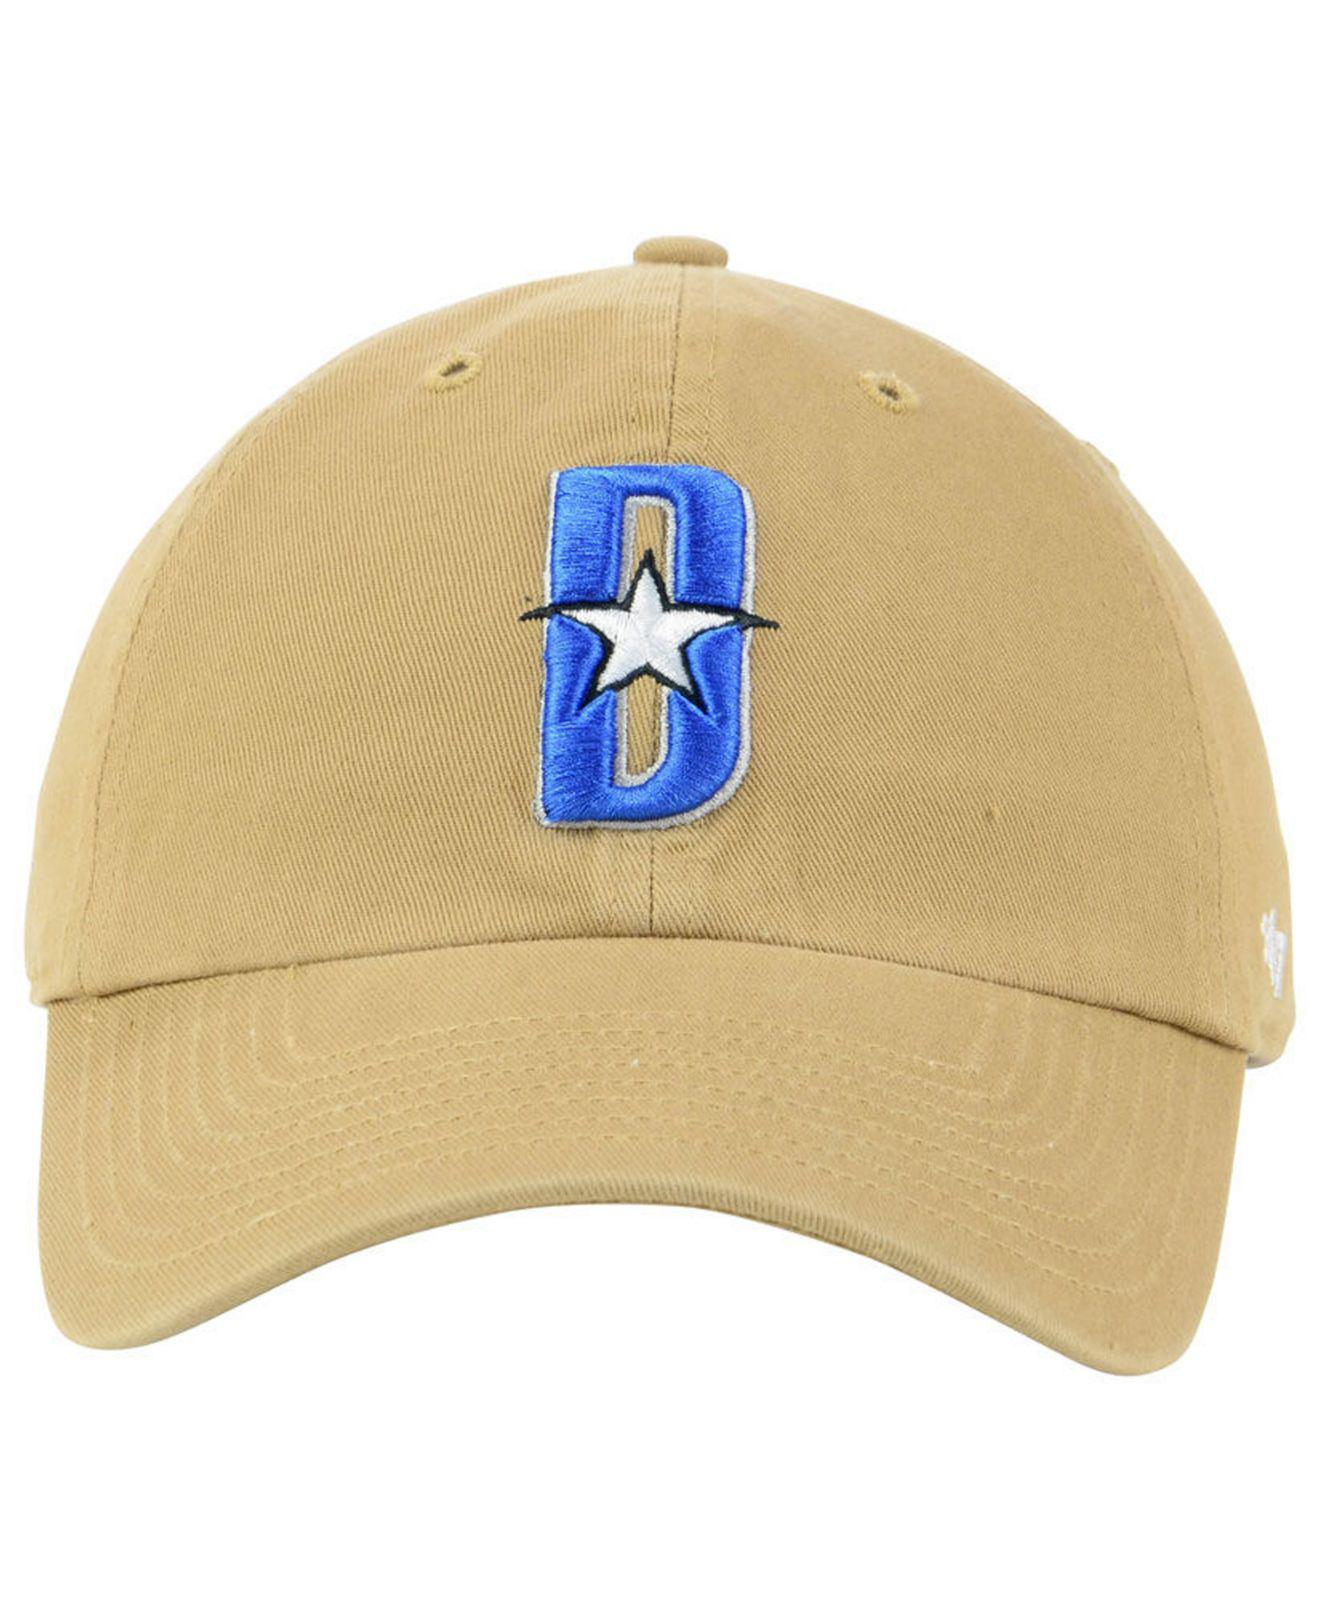 finest selection 9753c fa9b1 greece lyst 47 brand phoenix suns mash up clean up cap for men dadad 9ac57   ireland lyst 47 brand dallas mavericks mash up clean up cap for men f5272  3816f